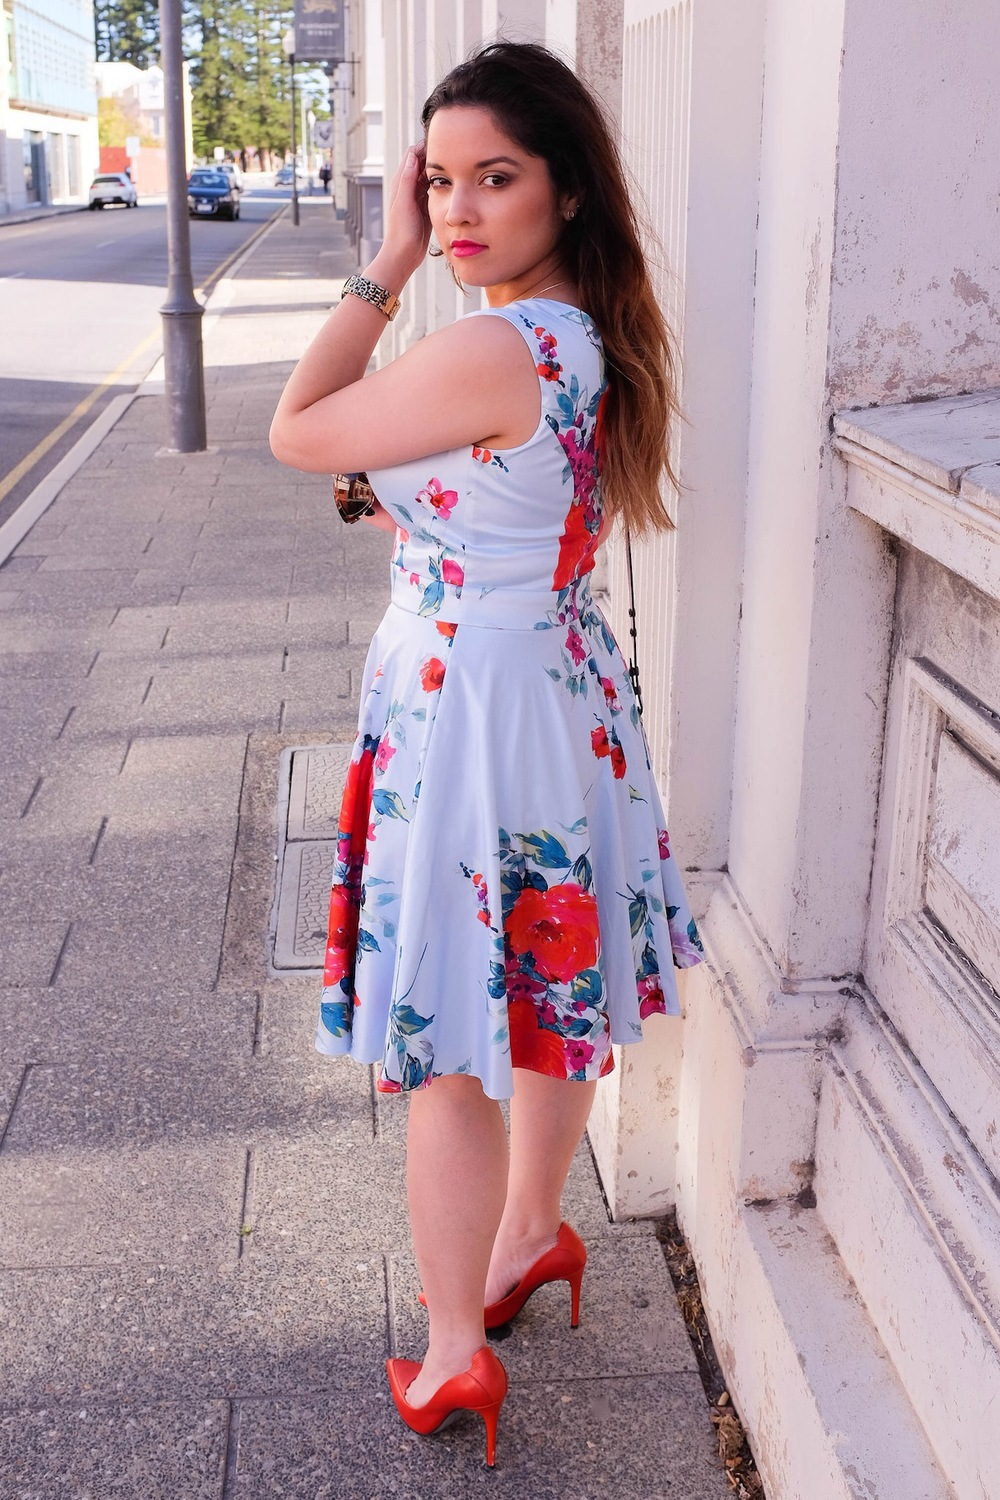 nezuki, fremantle, mimco, review, floral, fiesta, leather, orange heels, floral print, dress, day dress, guess, fashion, style, fashion photography, vanessa collars, stylish, perth, sydney, sydney blogger, fashion blogger, cute, kawaii, street style